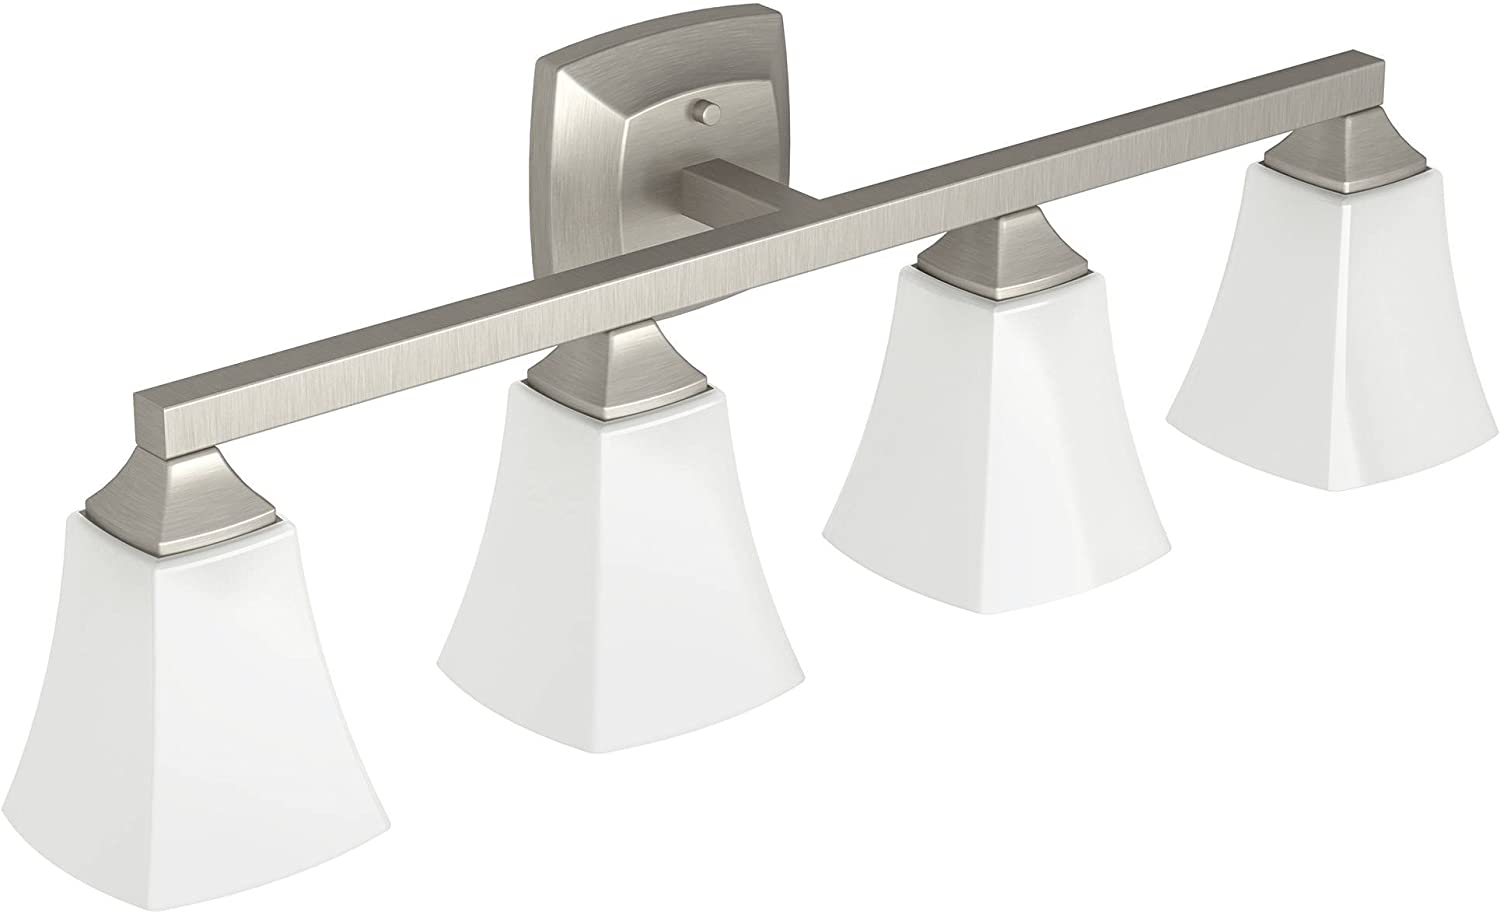 Moen YB5164BN Voss 4-Light Dual-Mount Bath Bathroom Vanity Fixture with Frosted Glass, Brushed Nickel